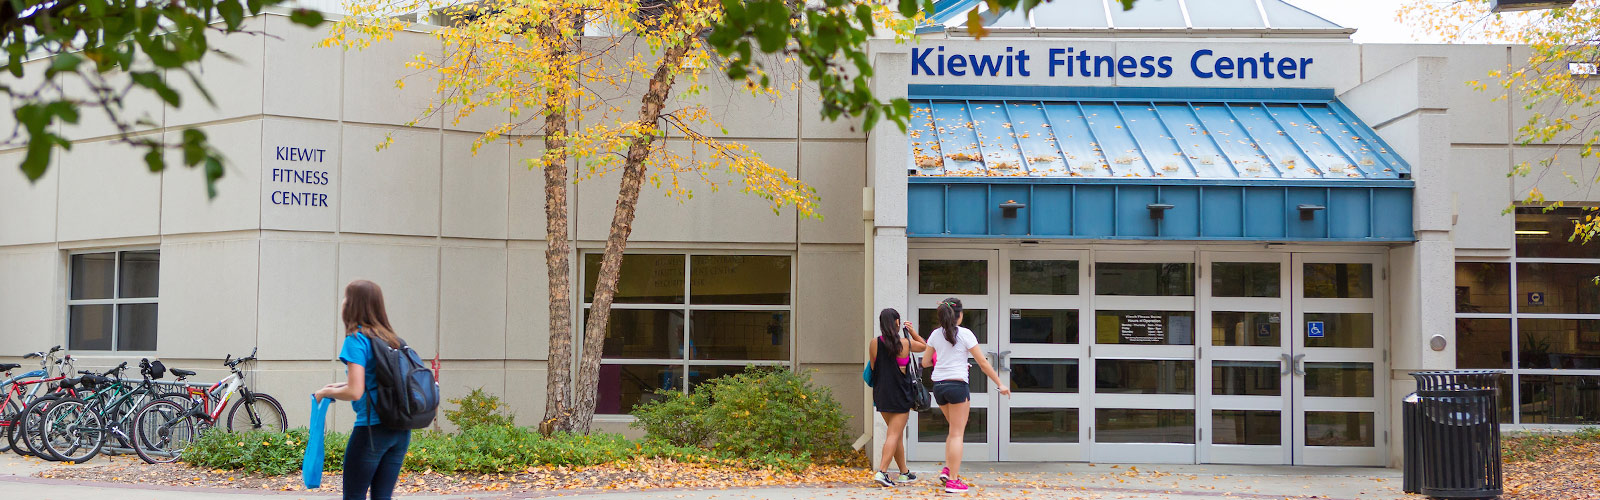 The Kiewit Fitness Center at Creighton University